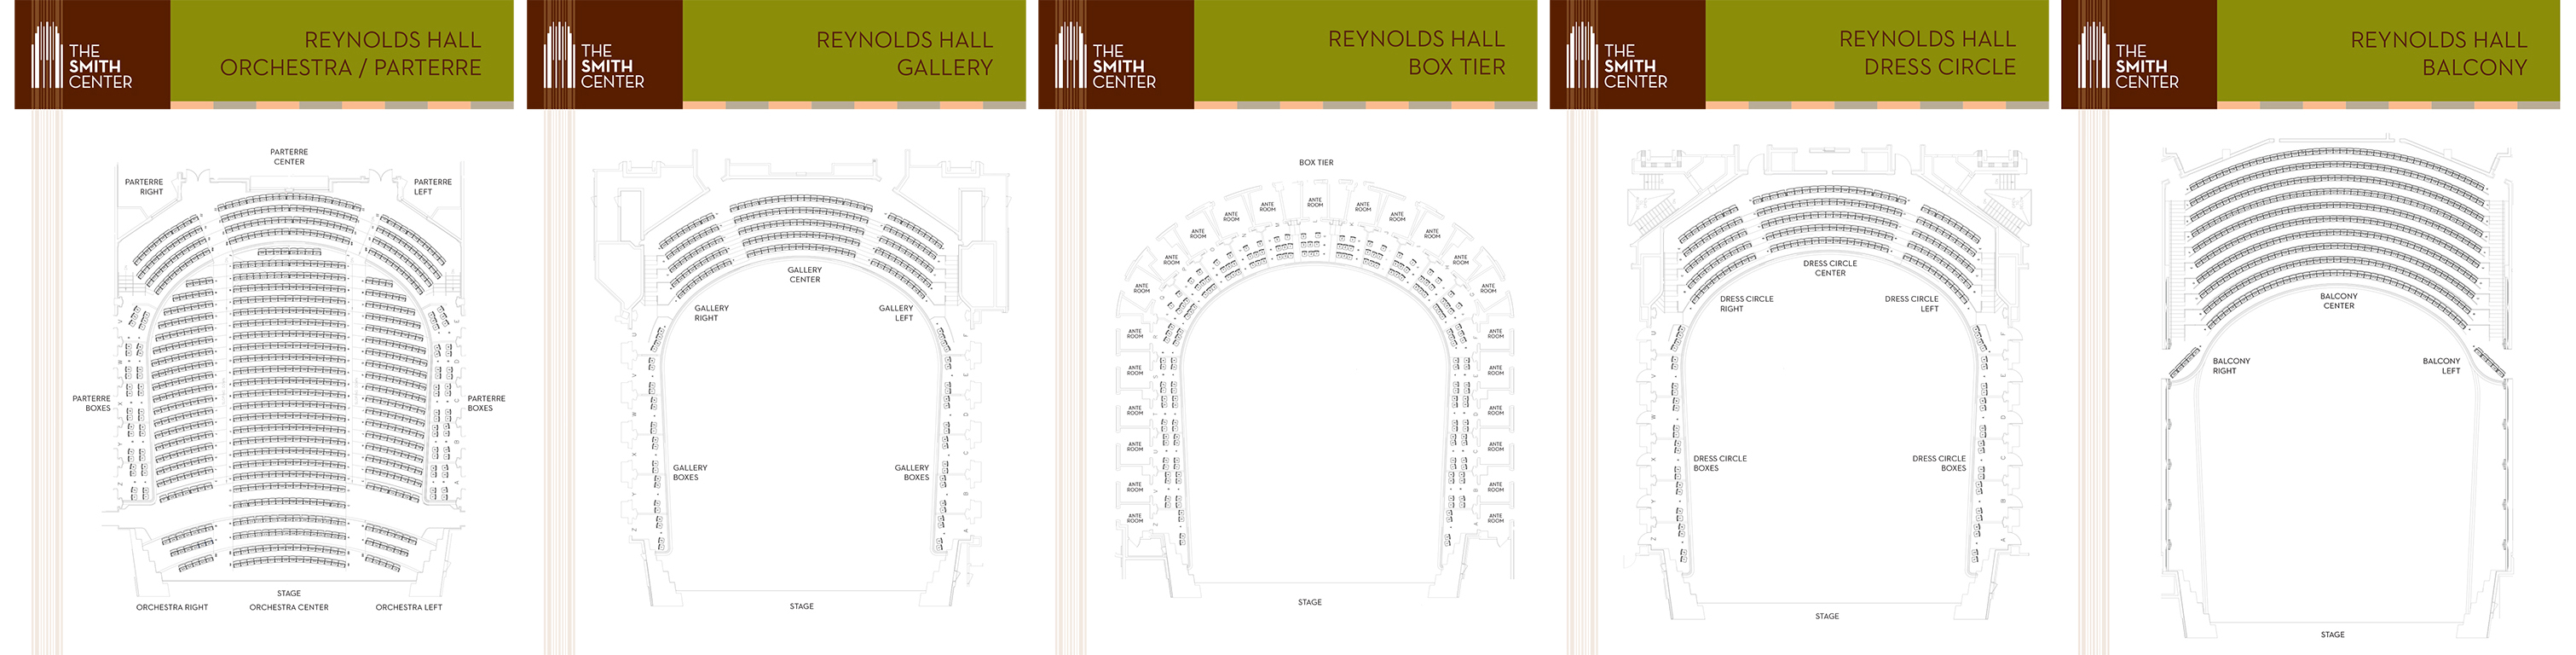 The smith center for the performing arts reynolds hall las vegas